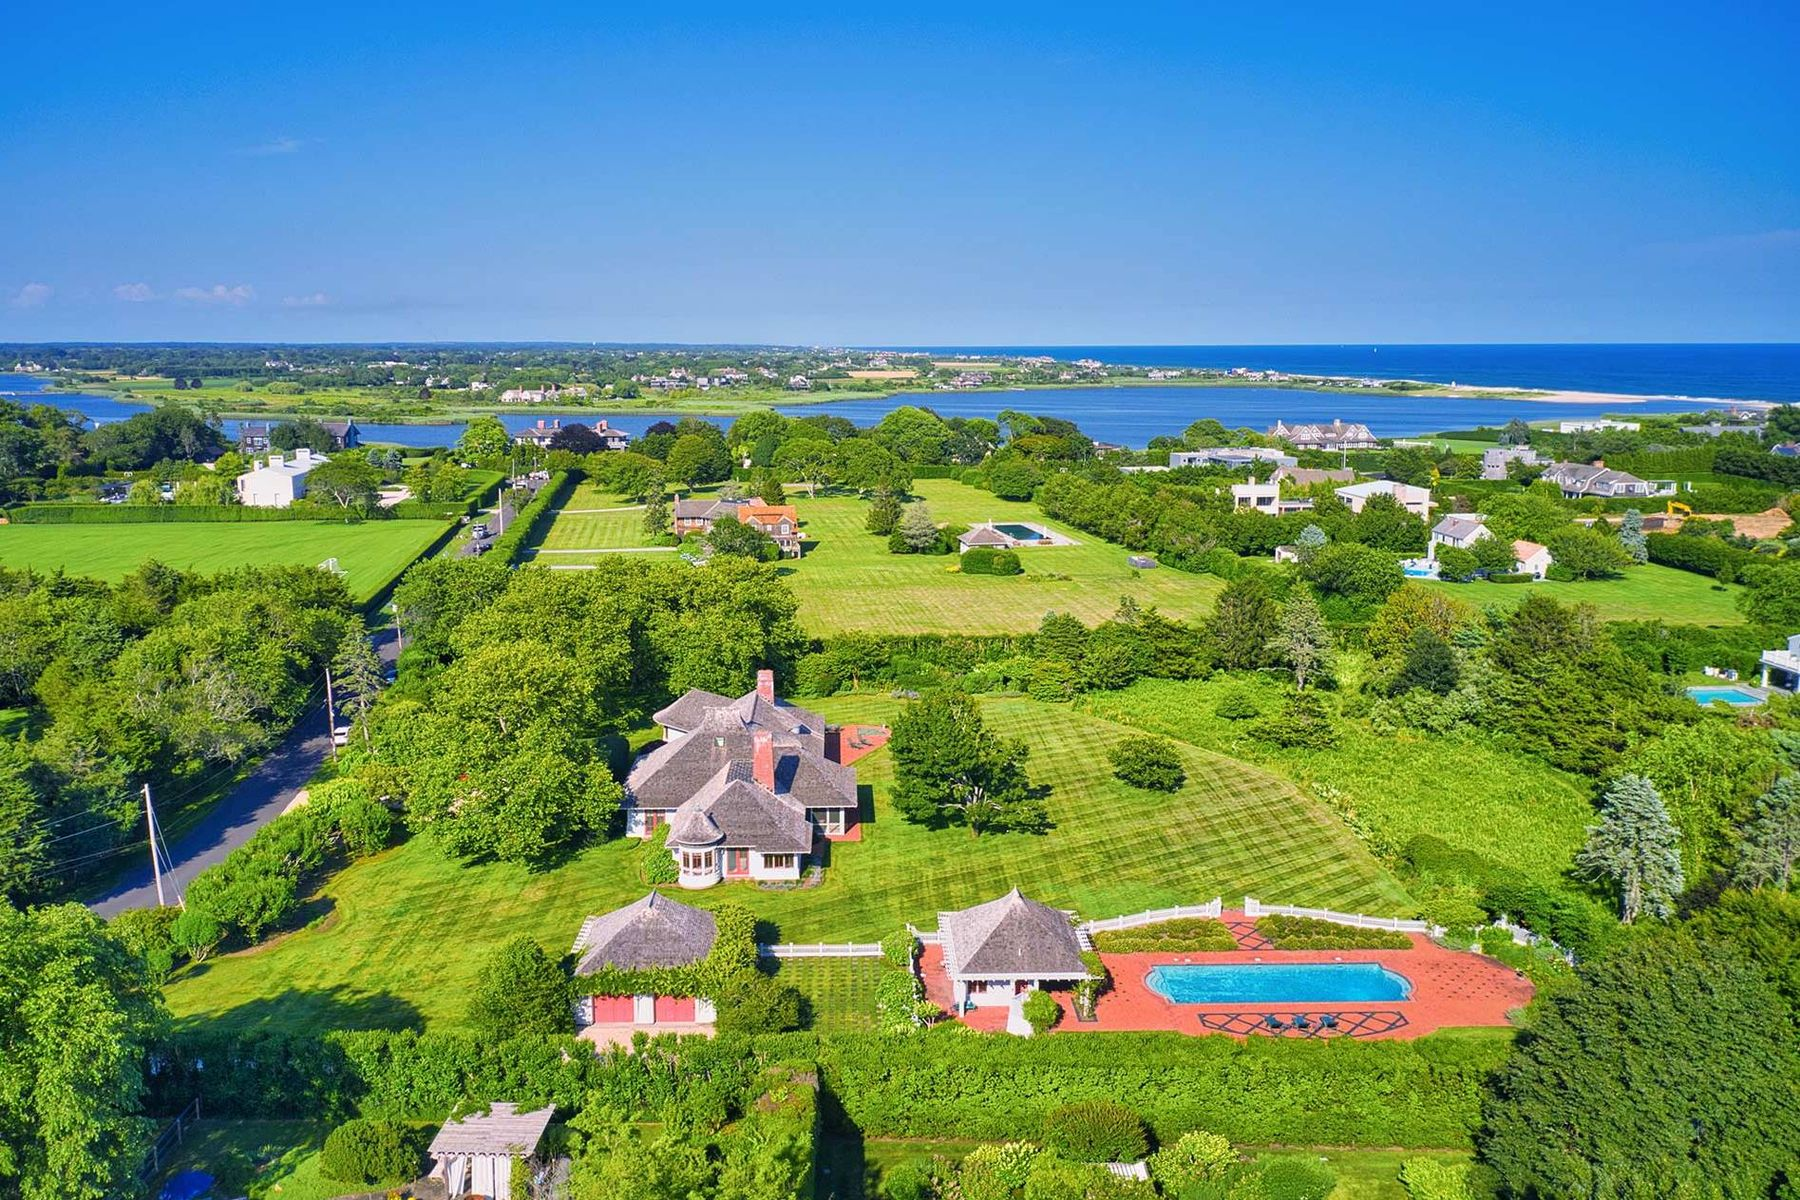 Single Family Homes for Active at Majestic 3+/- Acre Estate on Quimby Lane 111 Quimby Lane Bridgehampton, New York 11932 United States